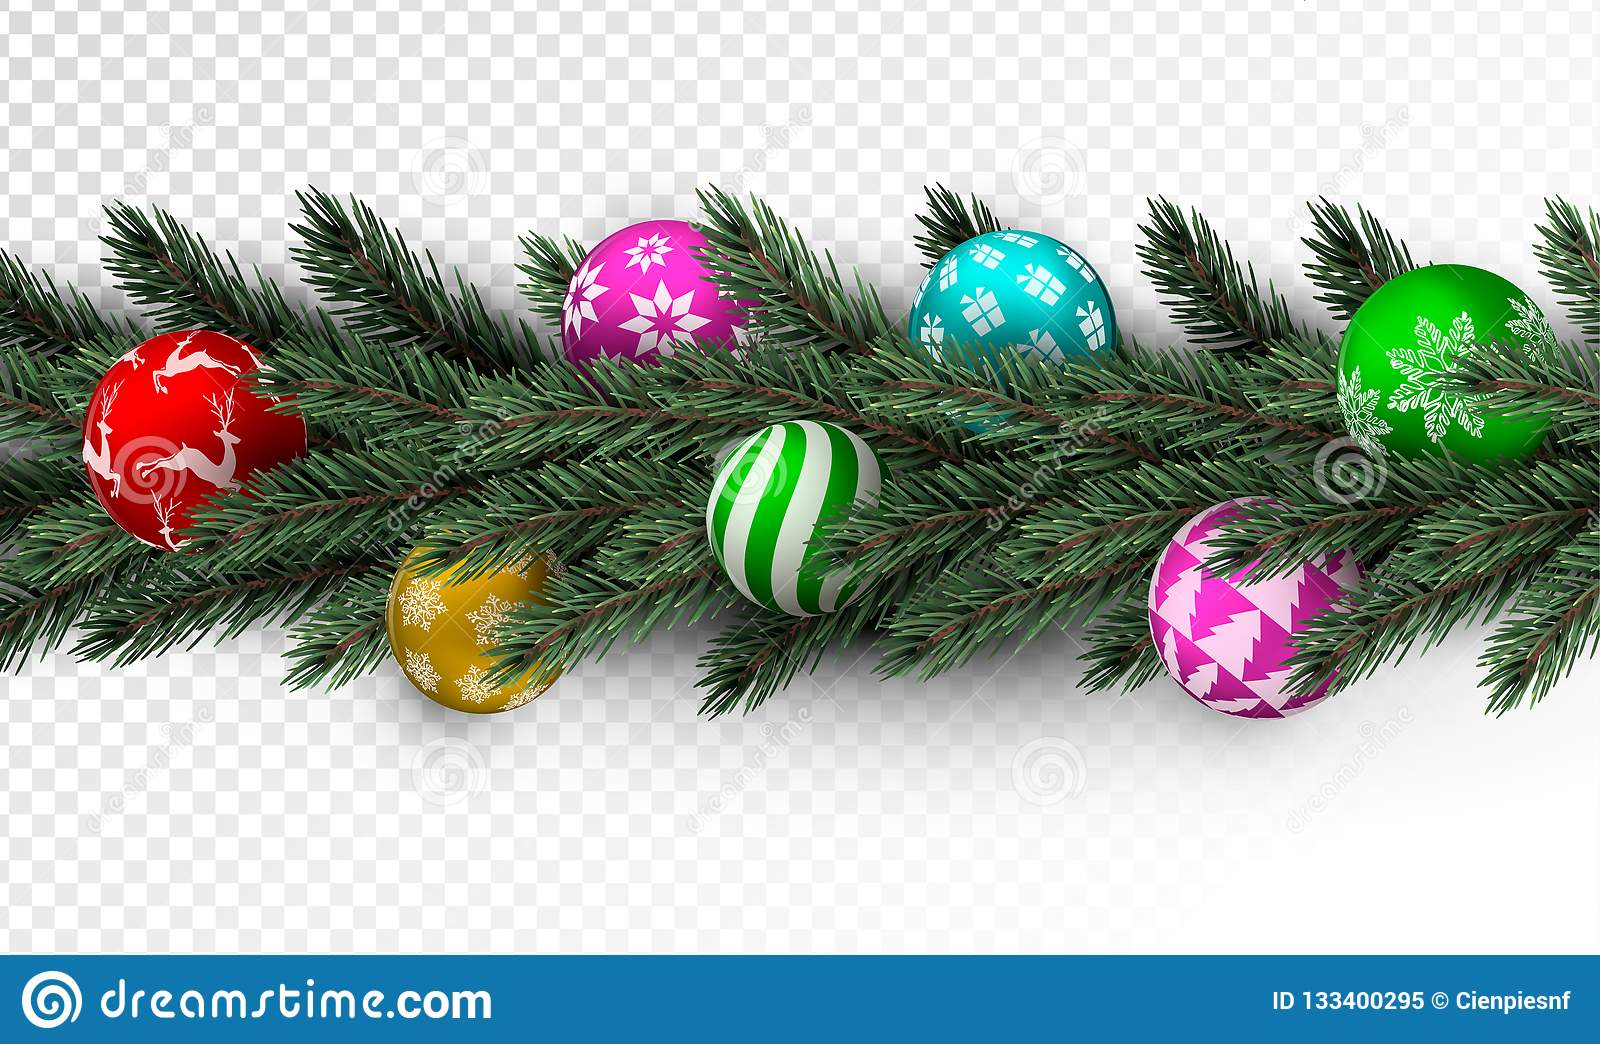 Transparent Christmas Garland With Colorful Bauble Stock Vector